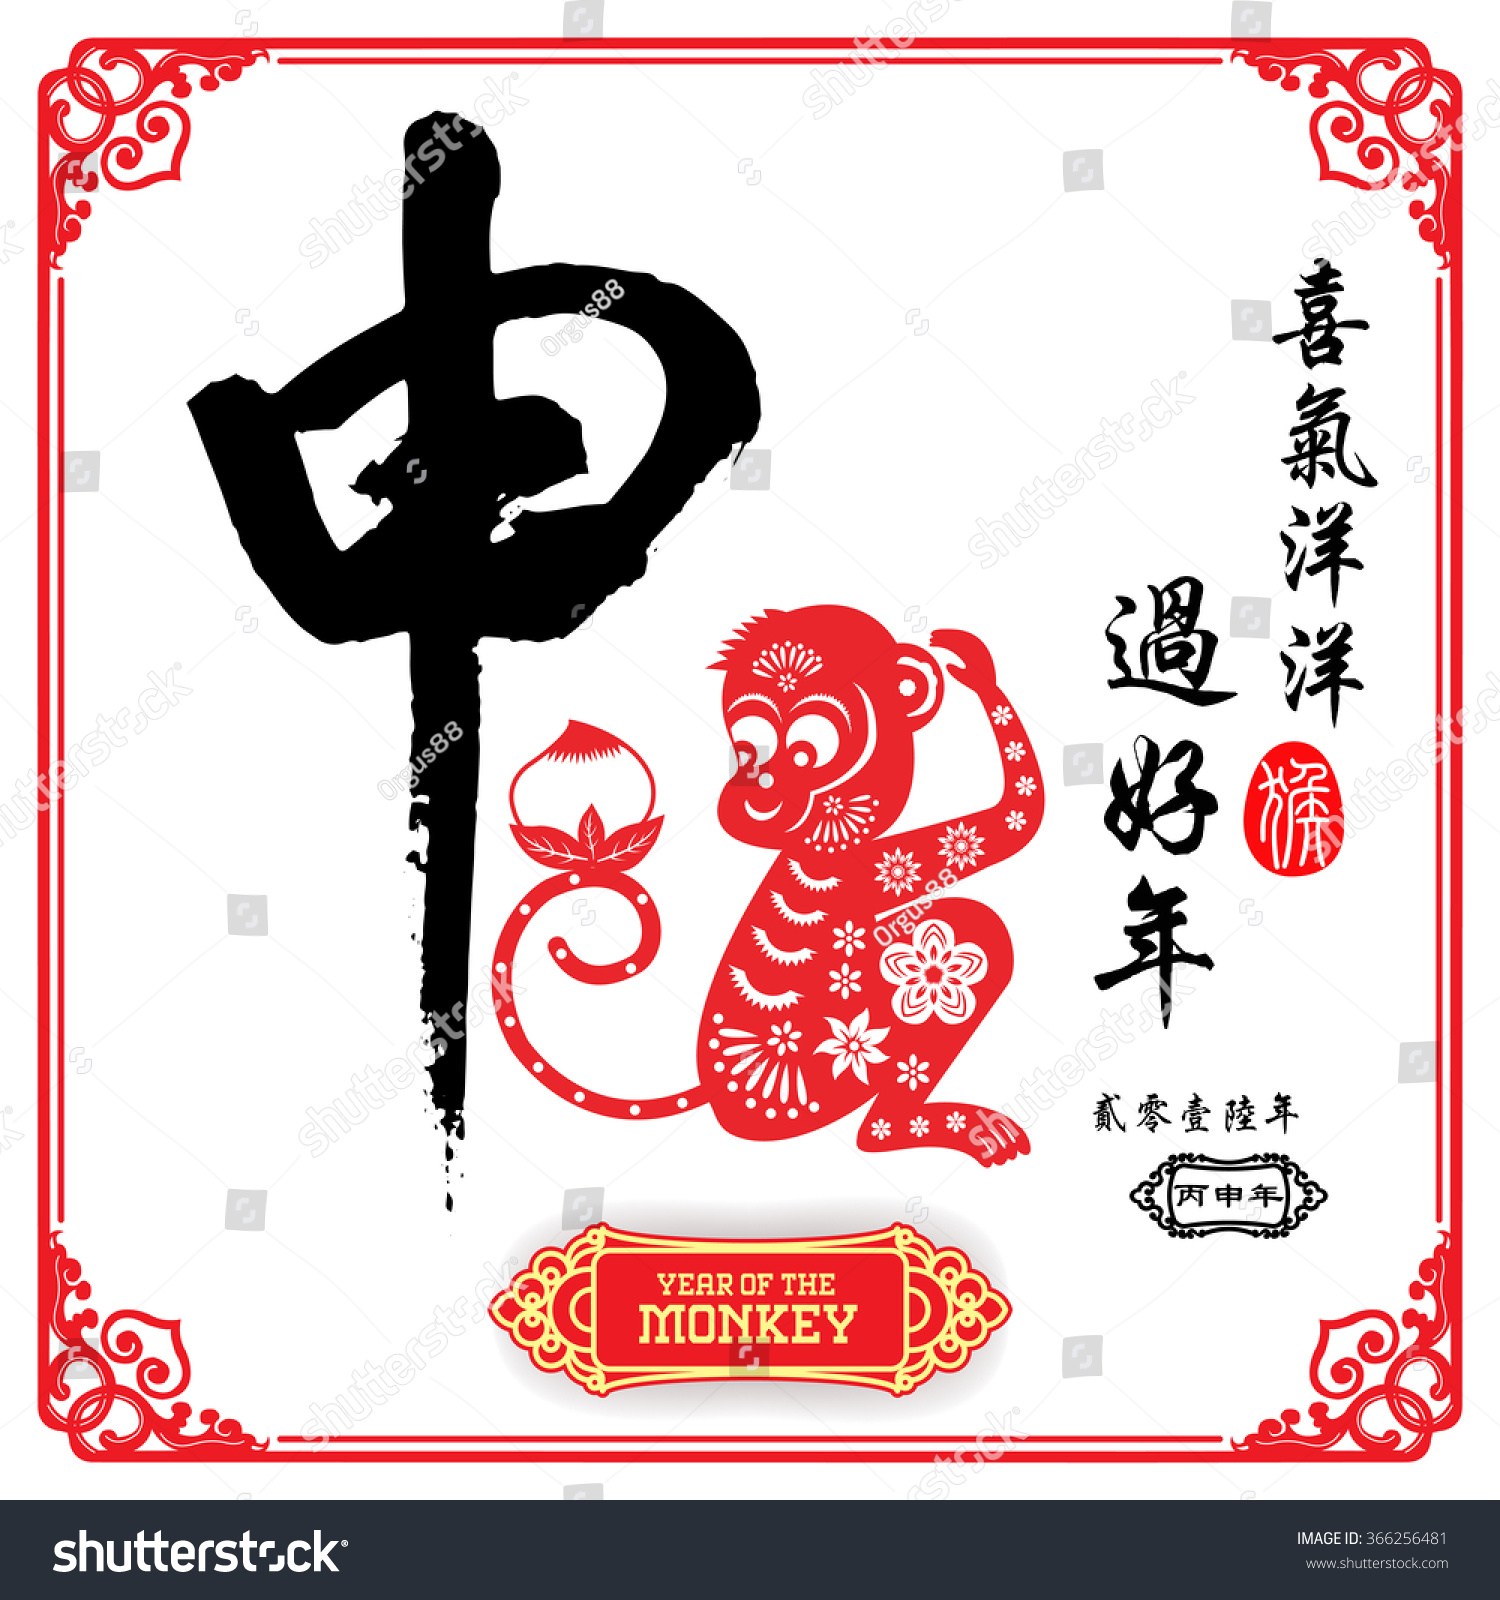 Chinese Calligraphy Shen Characters Meaning Monkey Stock